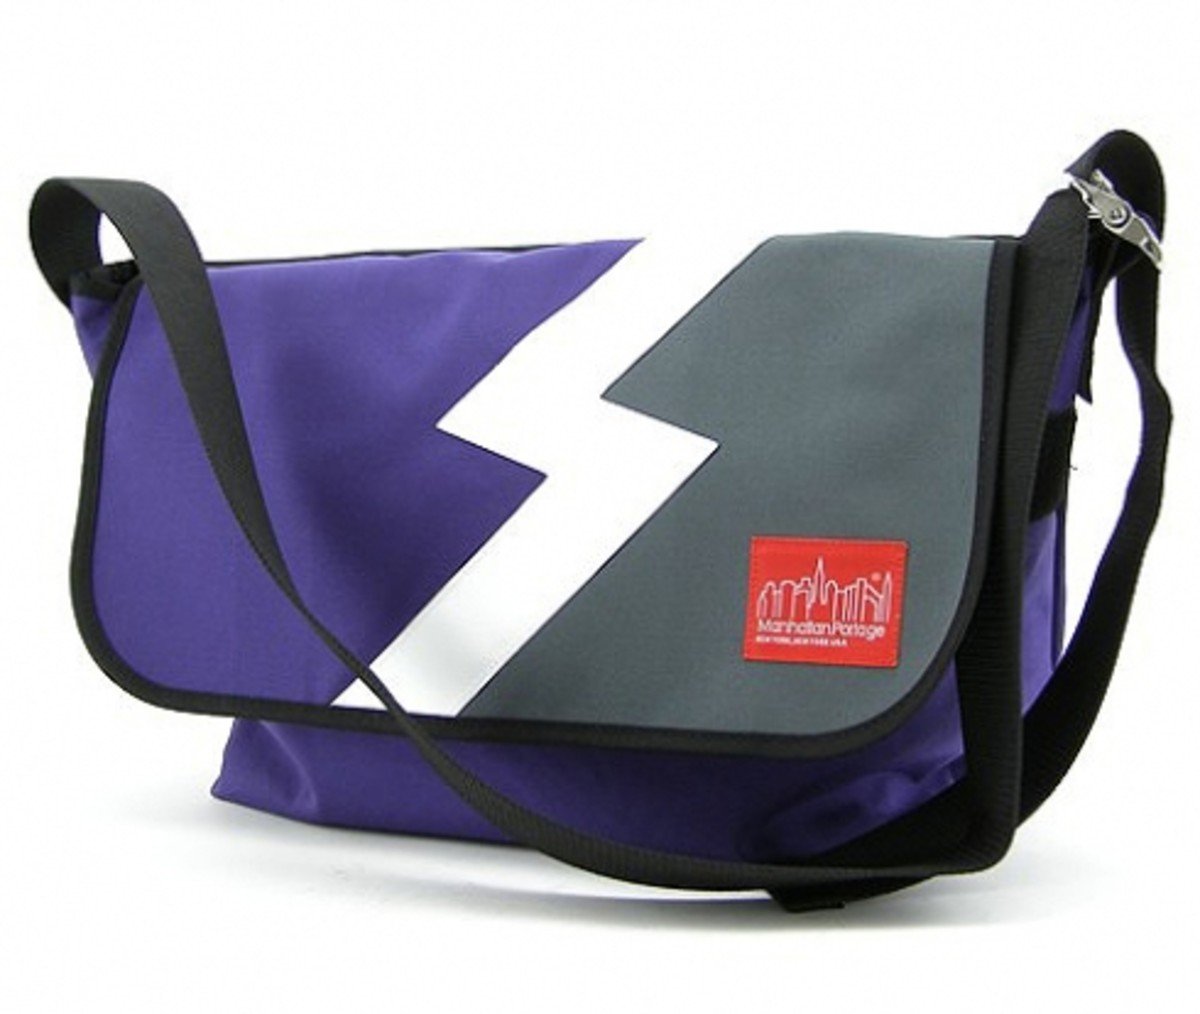 SILAS x Manhattan Portage - Lightning Messenger Bag